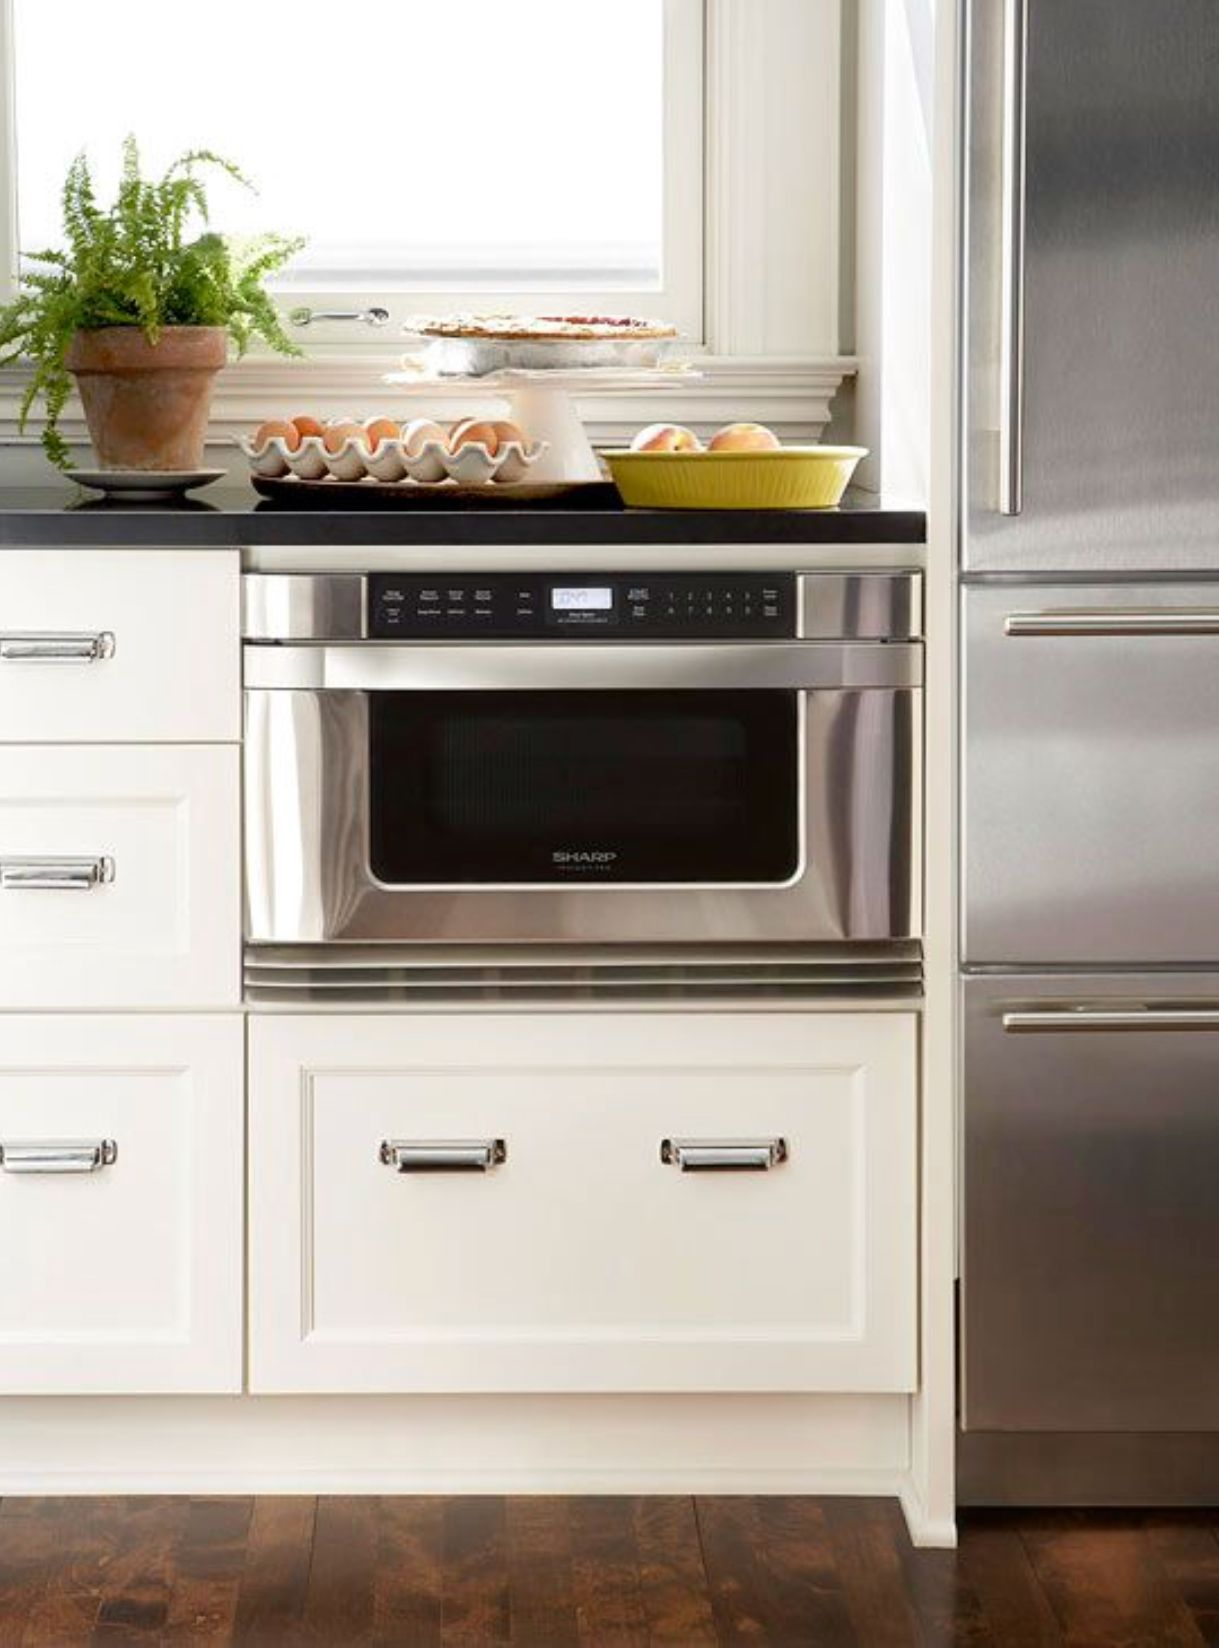 I Like This Small Oven Could Put A Gl Cooktop Over It With Storage Underneath Good For Bat Kitchenette Apartment